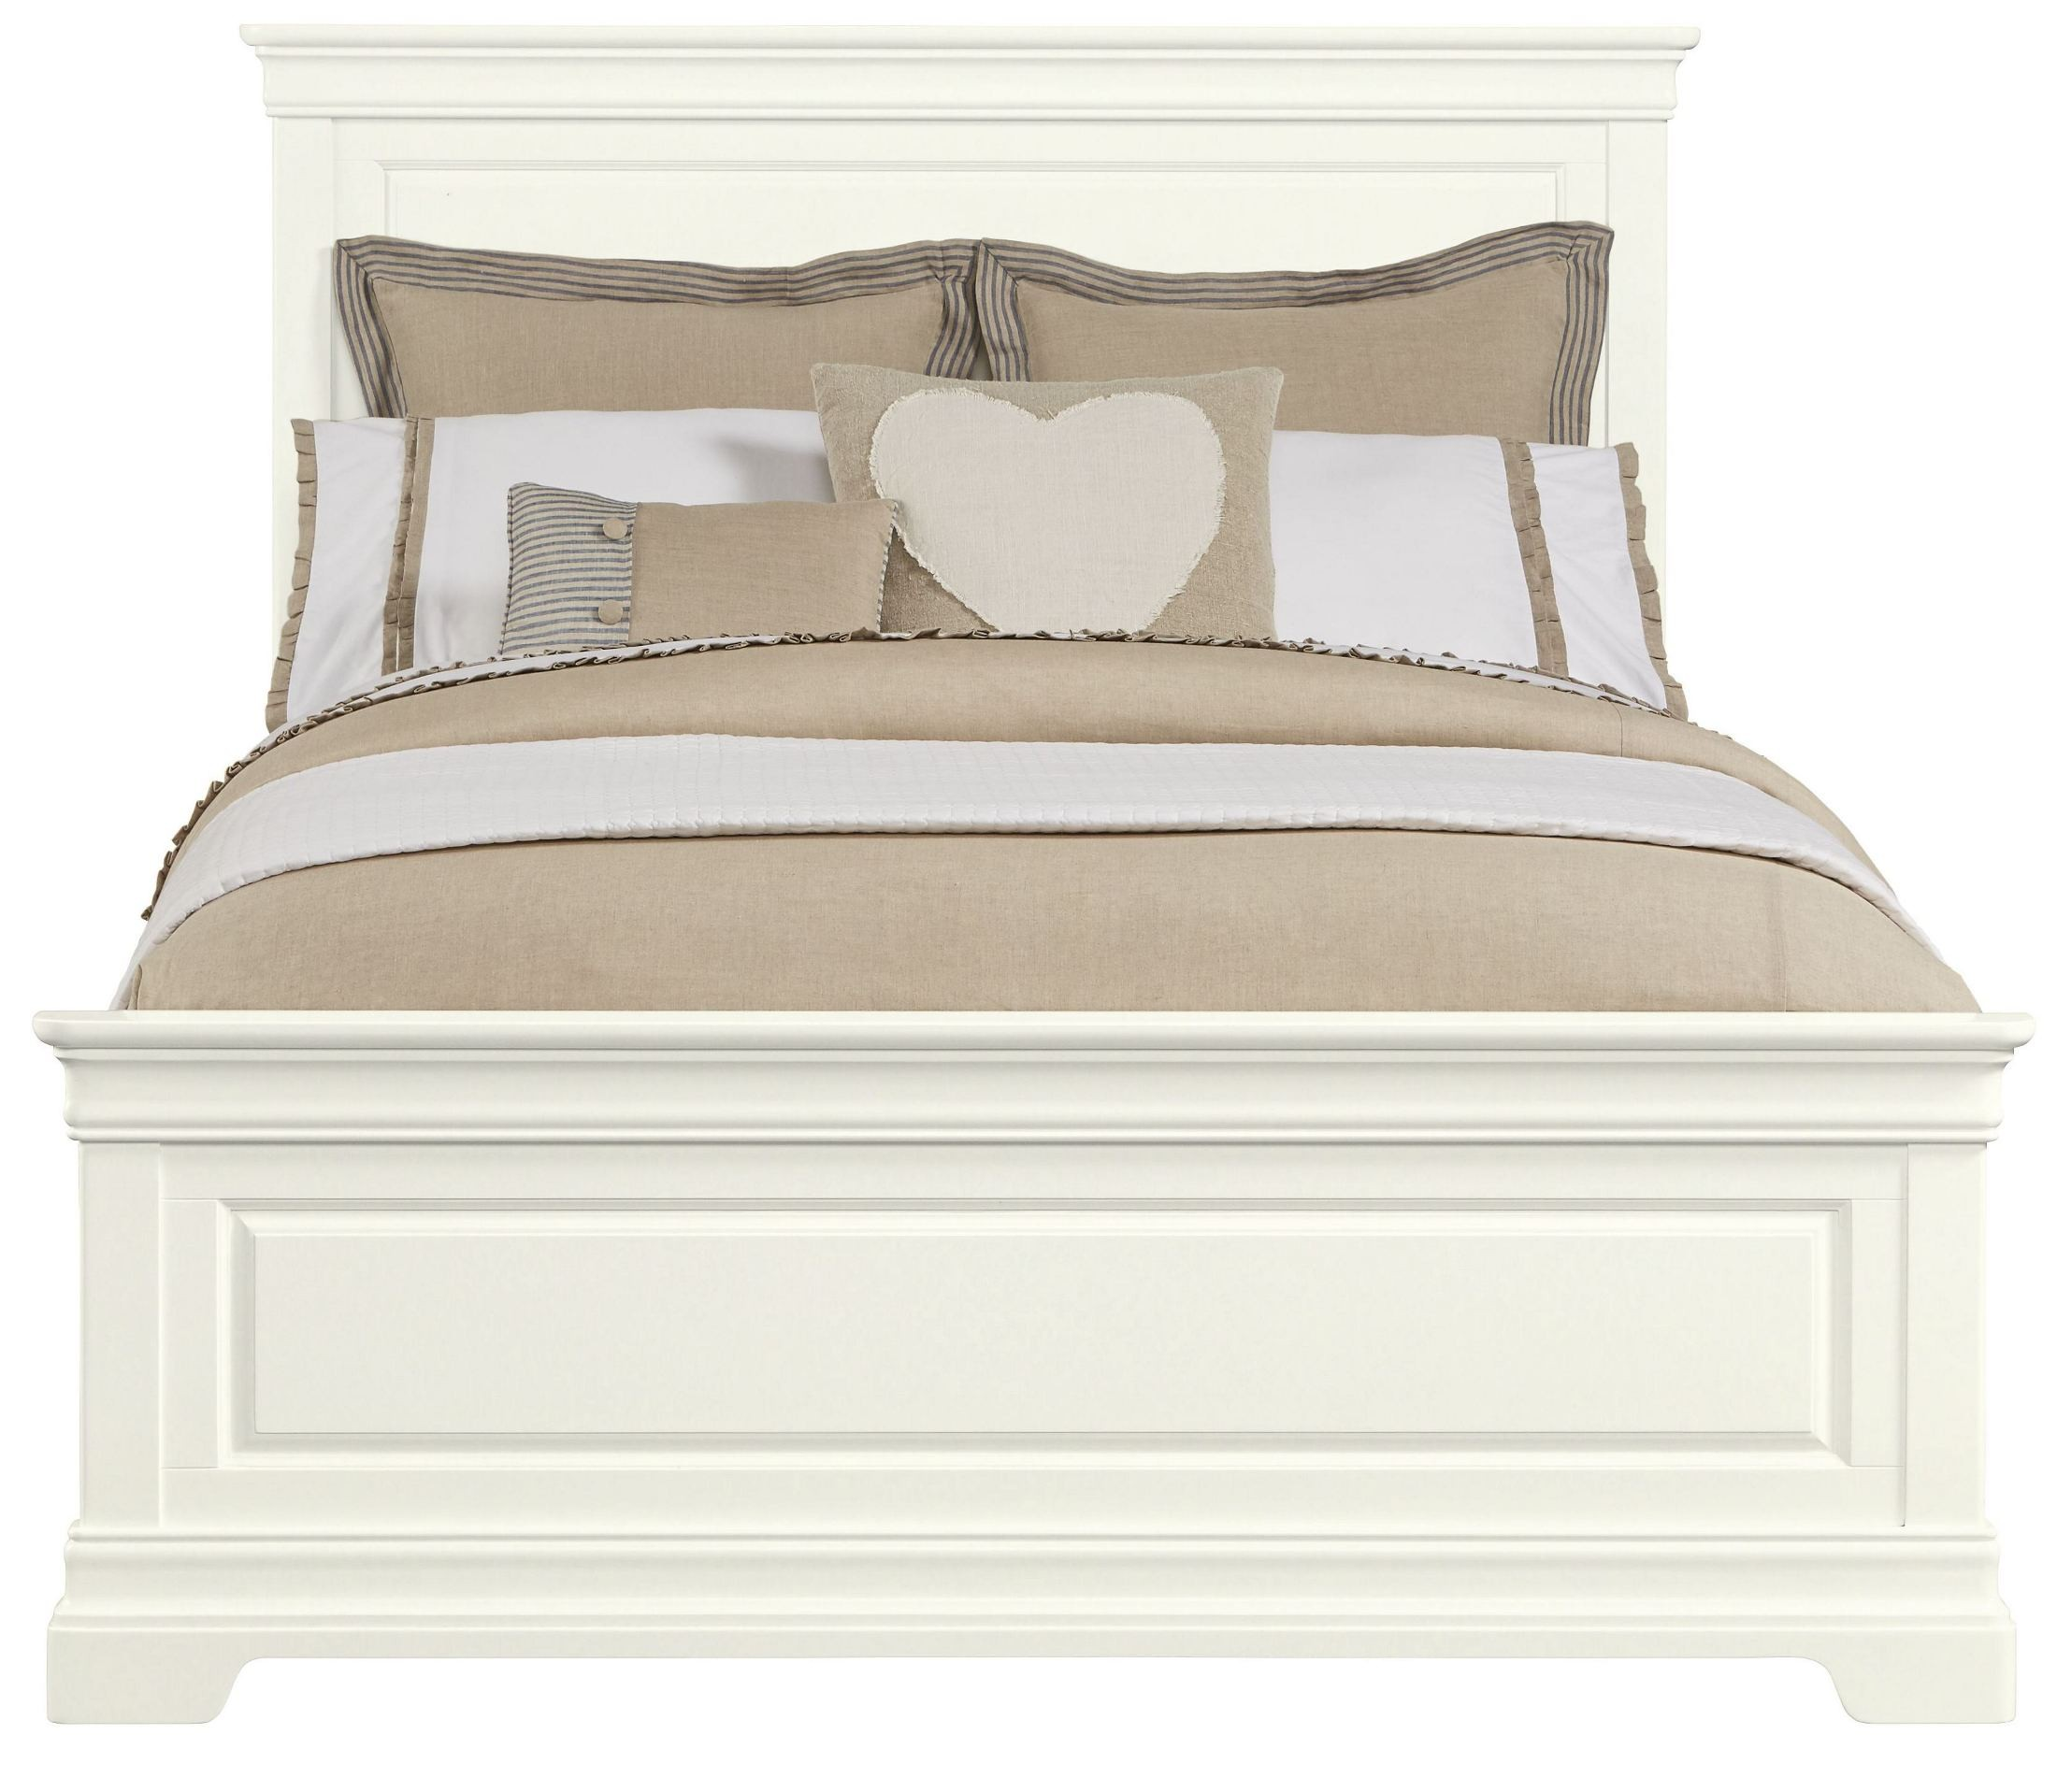 teaberry lane stardust panel bedroom set 575 23 45 stone and leigh